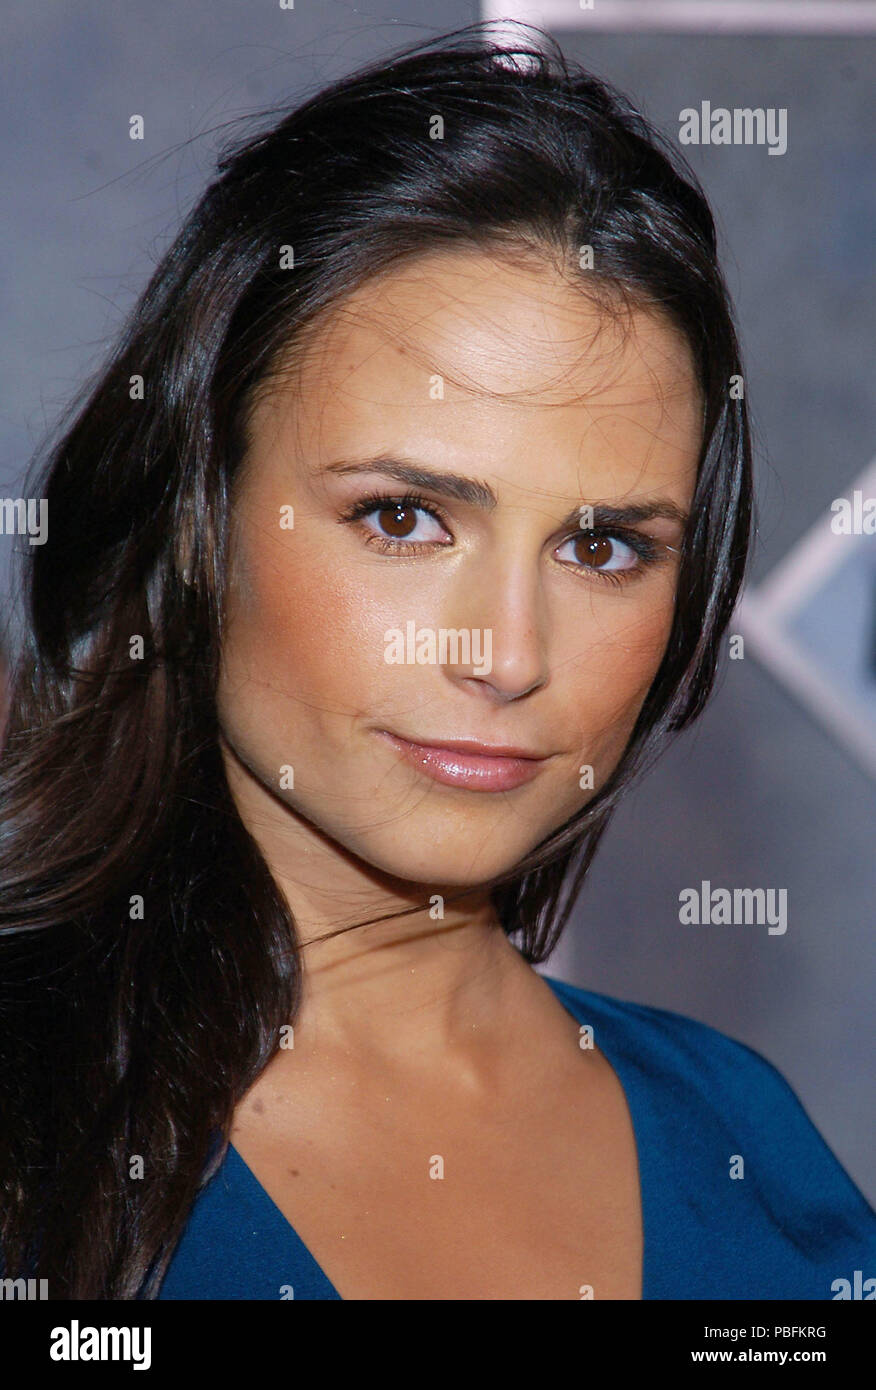 Jordana Brewster Annapolis High Resolution Stock Photography And Images Alamy